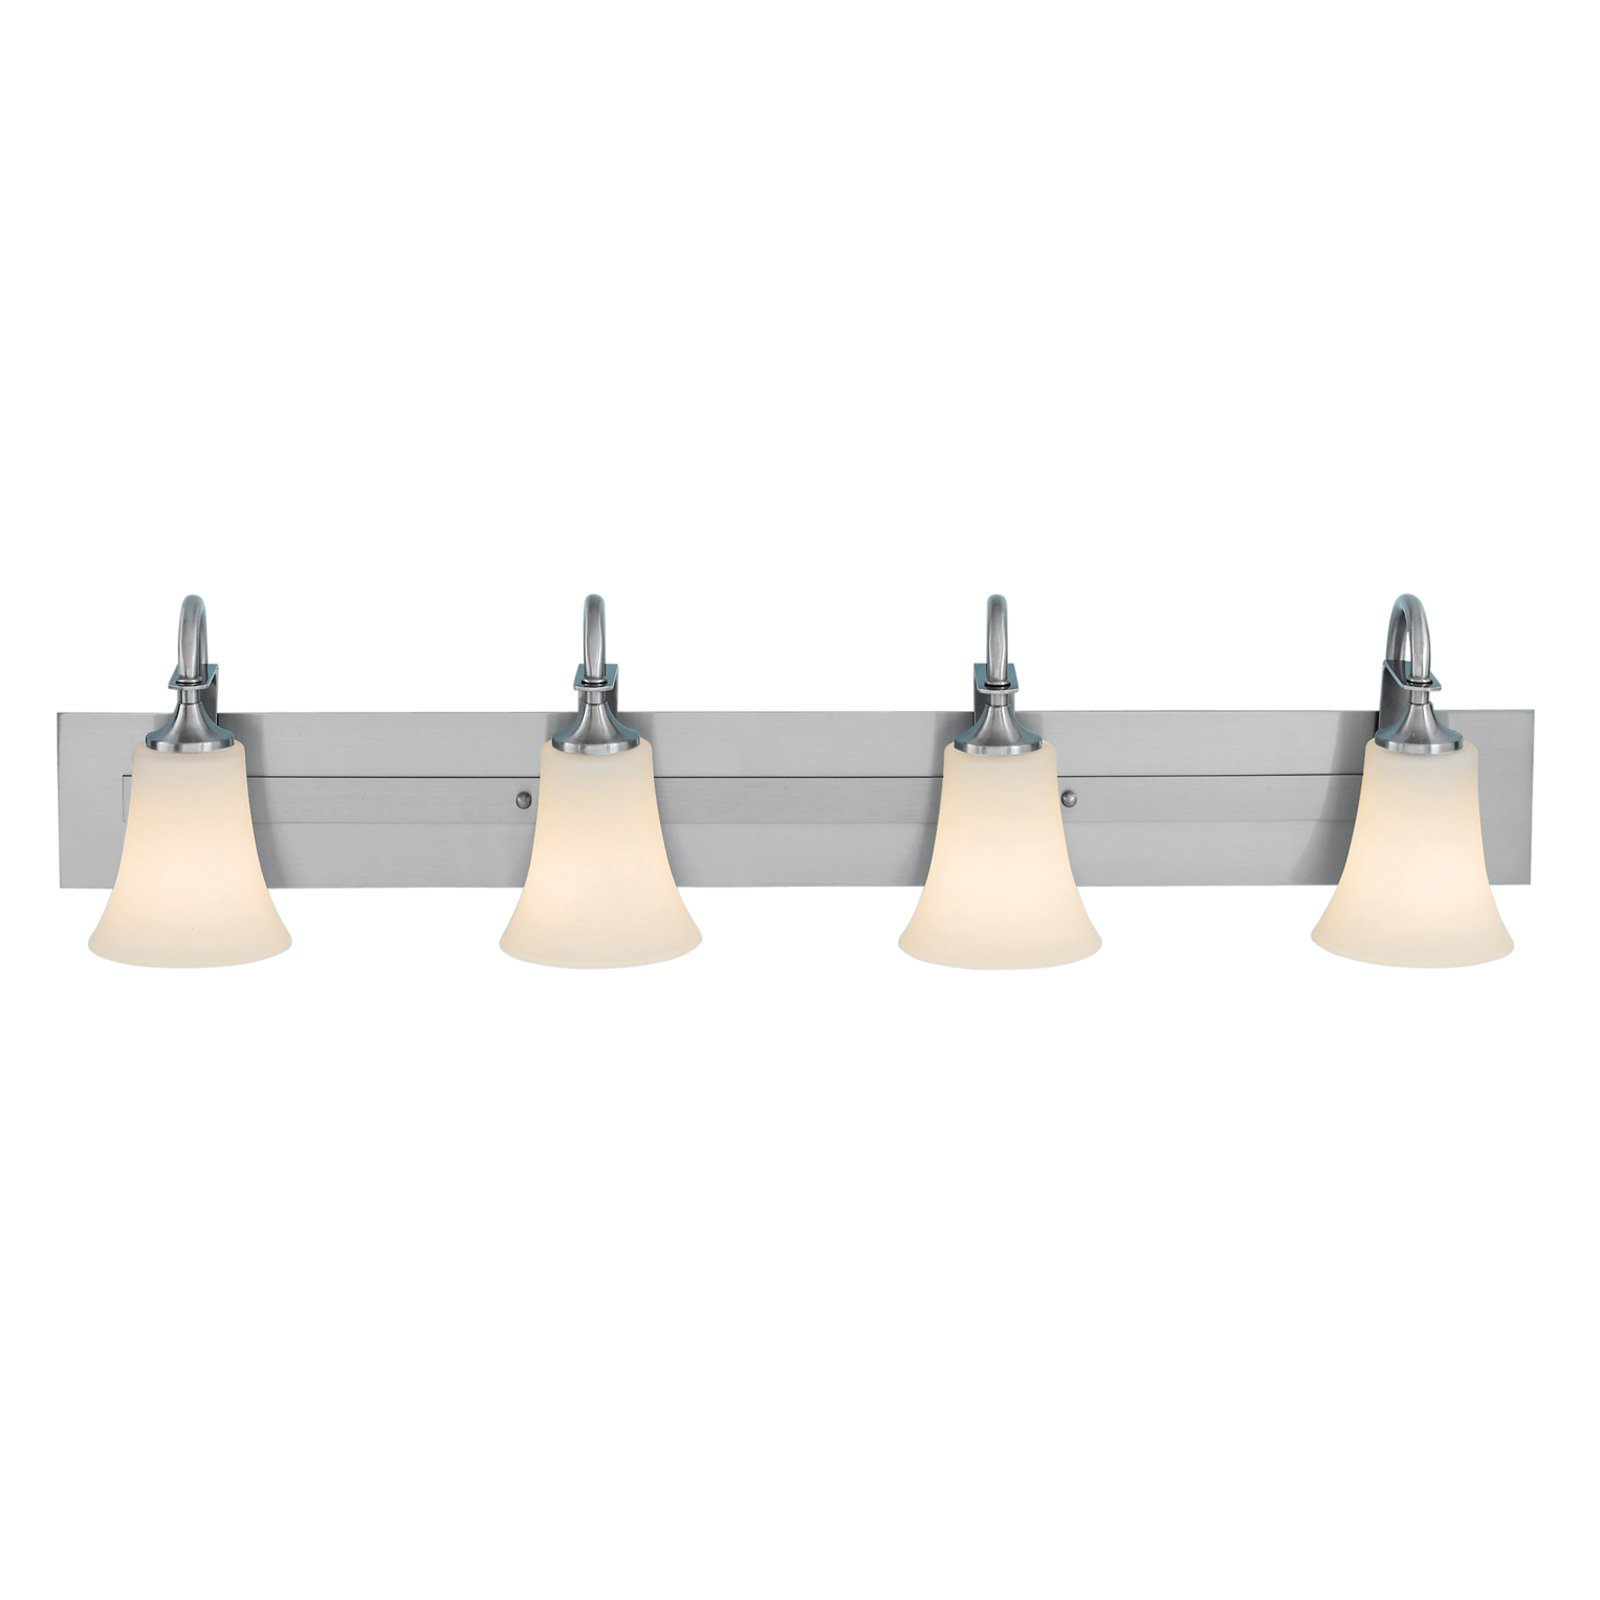 Feiss Barrington Bathroom Wall Light 37W in. Brushed Steel by Murray Feiss